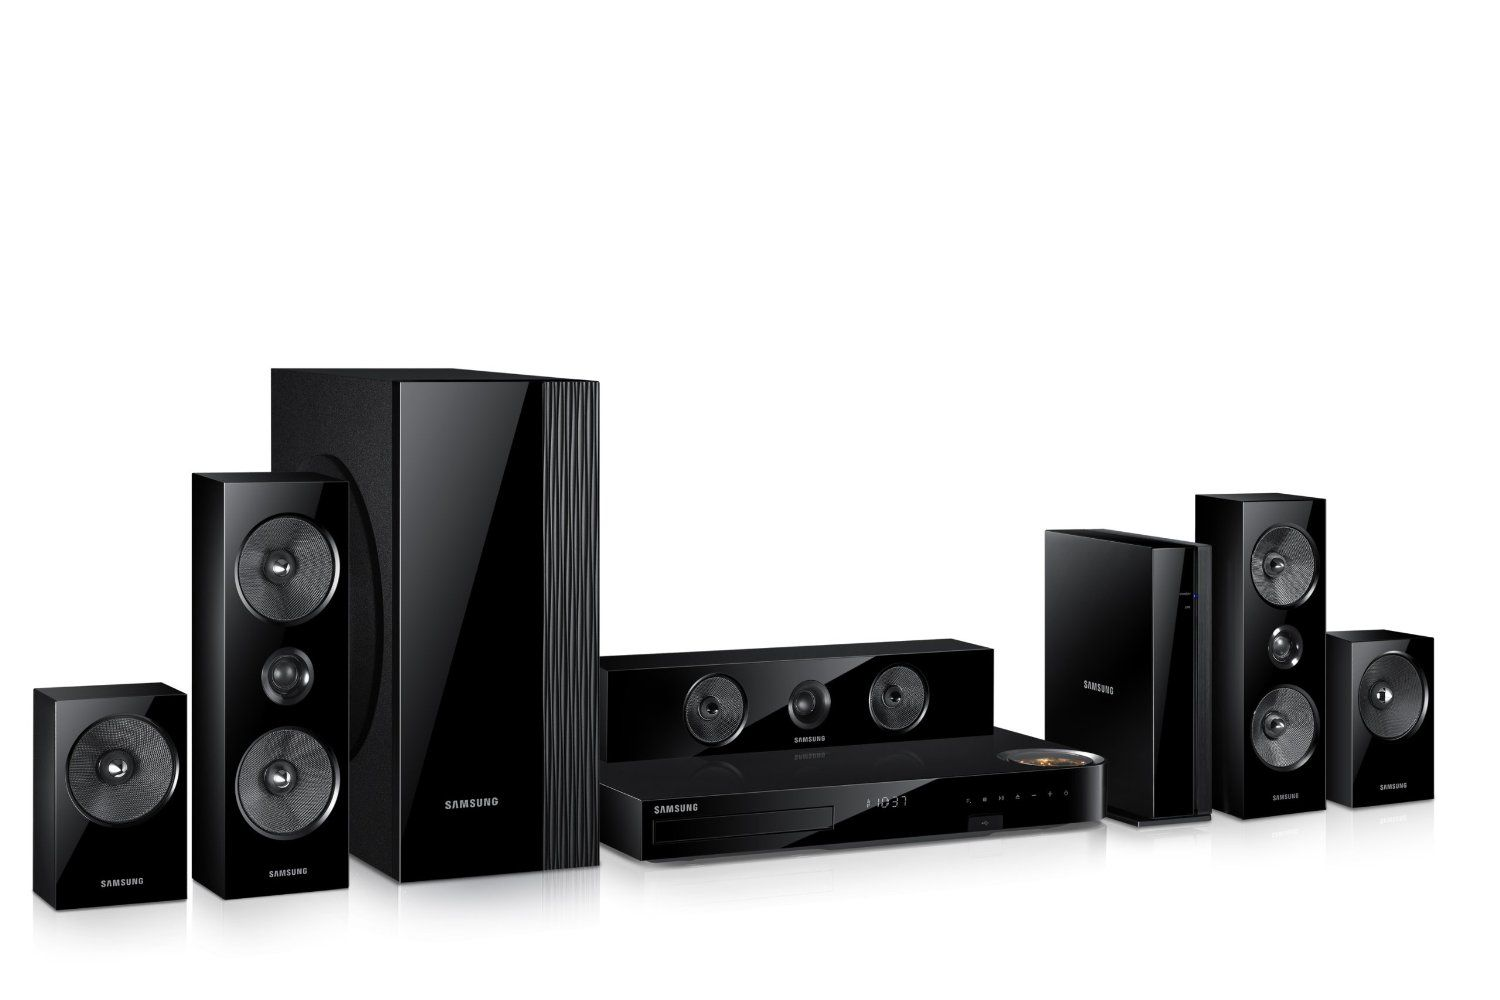 Samsung 5.1 Home Theater System. Surround sound sytem that connects to HDTV. You can also connect to Bluetooth devices, iPods etc. and browse the web. Also connects to streaming service like Netflix and Hulu. #DadTech #Tech